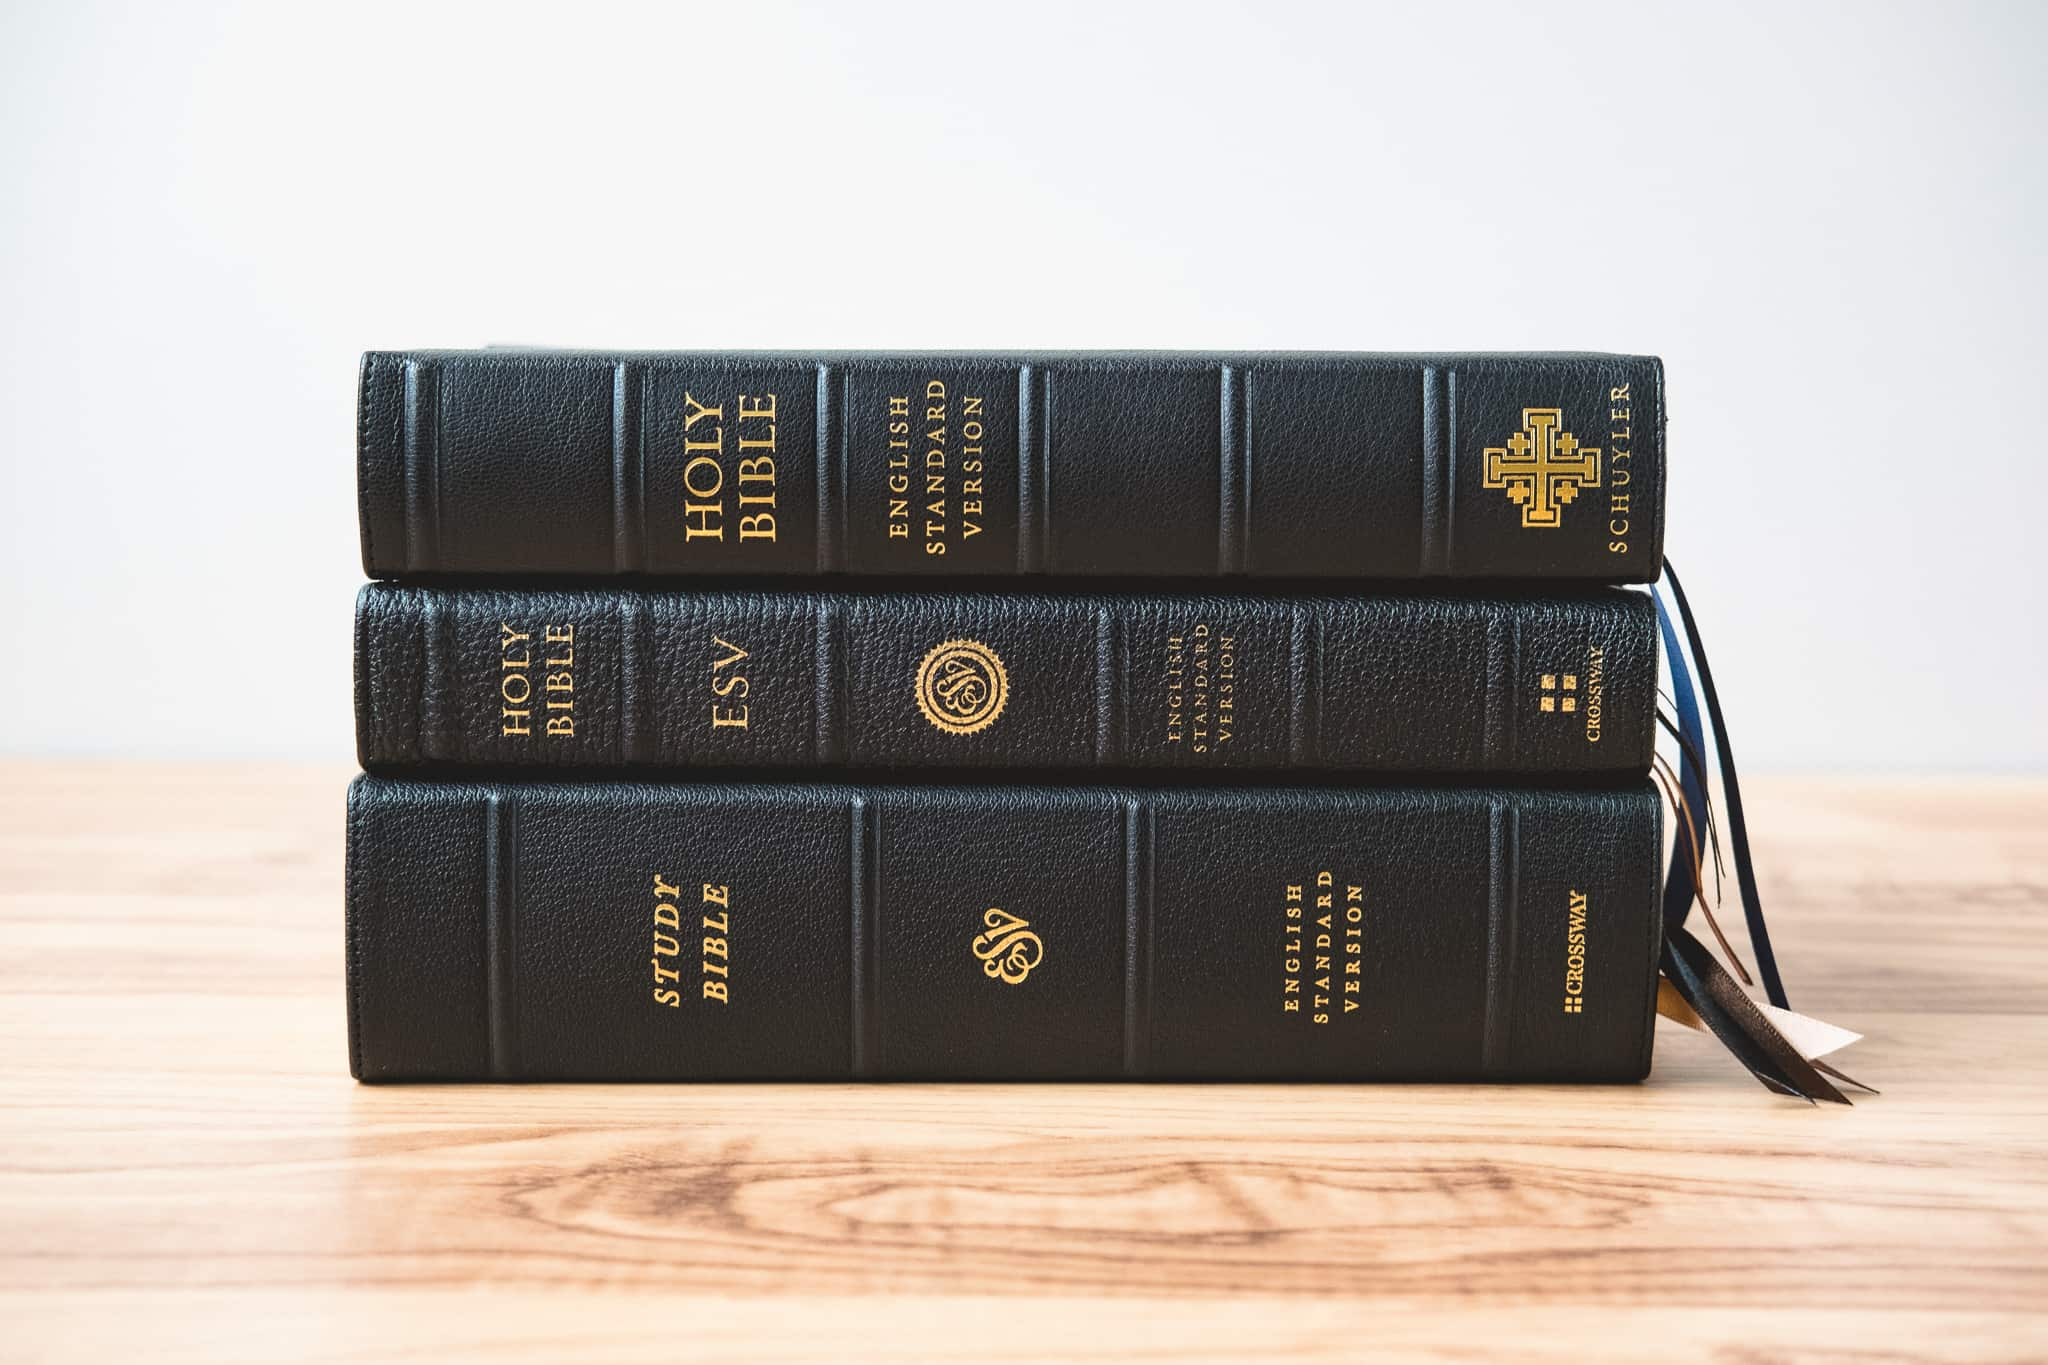 ESV Heirloom Spine Comparison